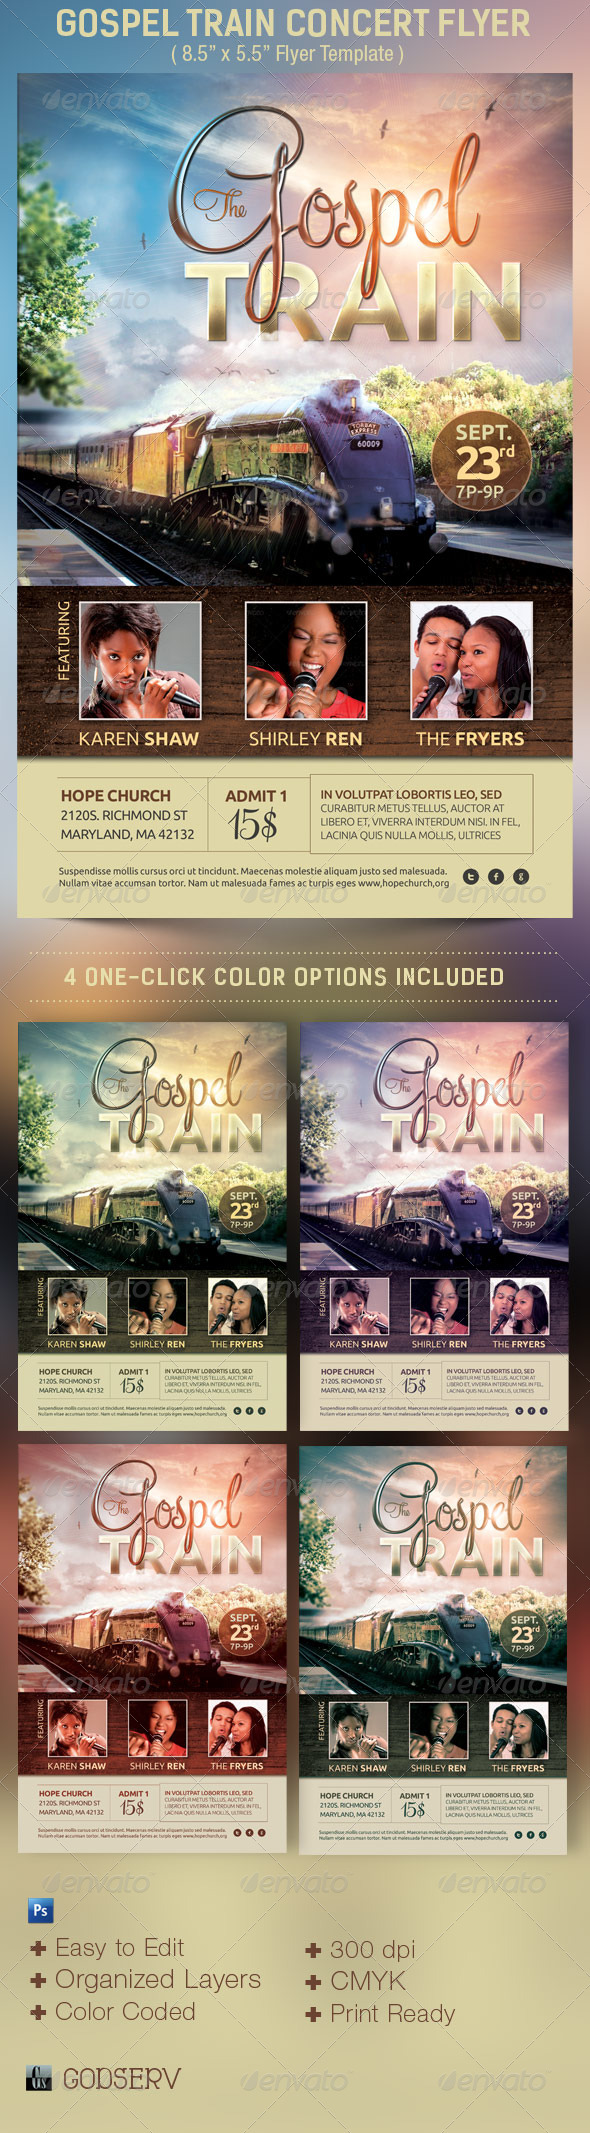 Gospel Train Church Concert Flyer Template - Church Flyers